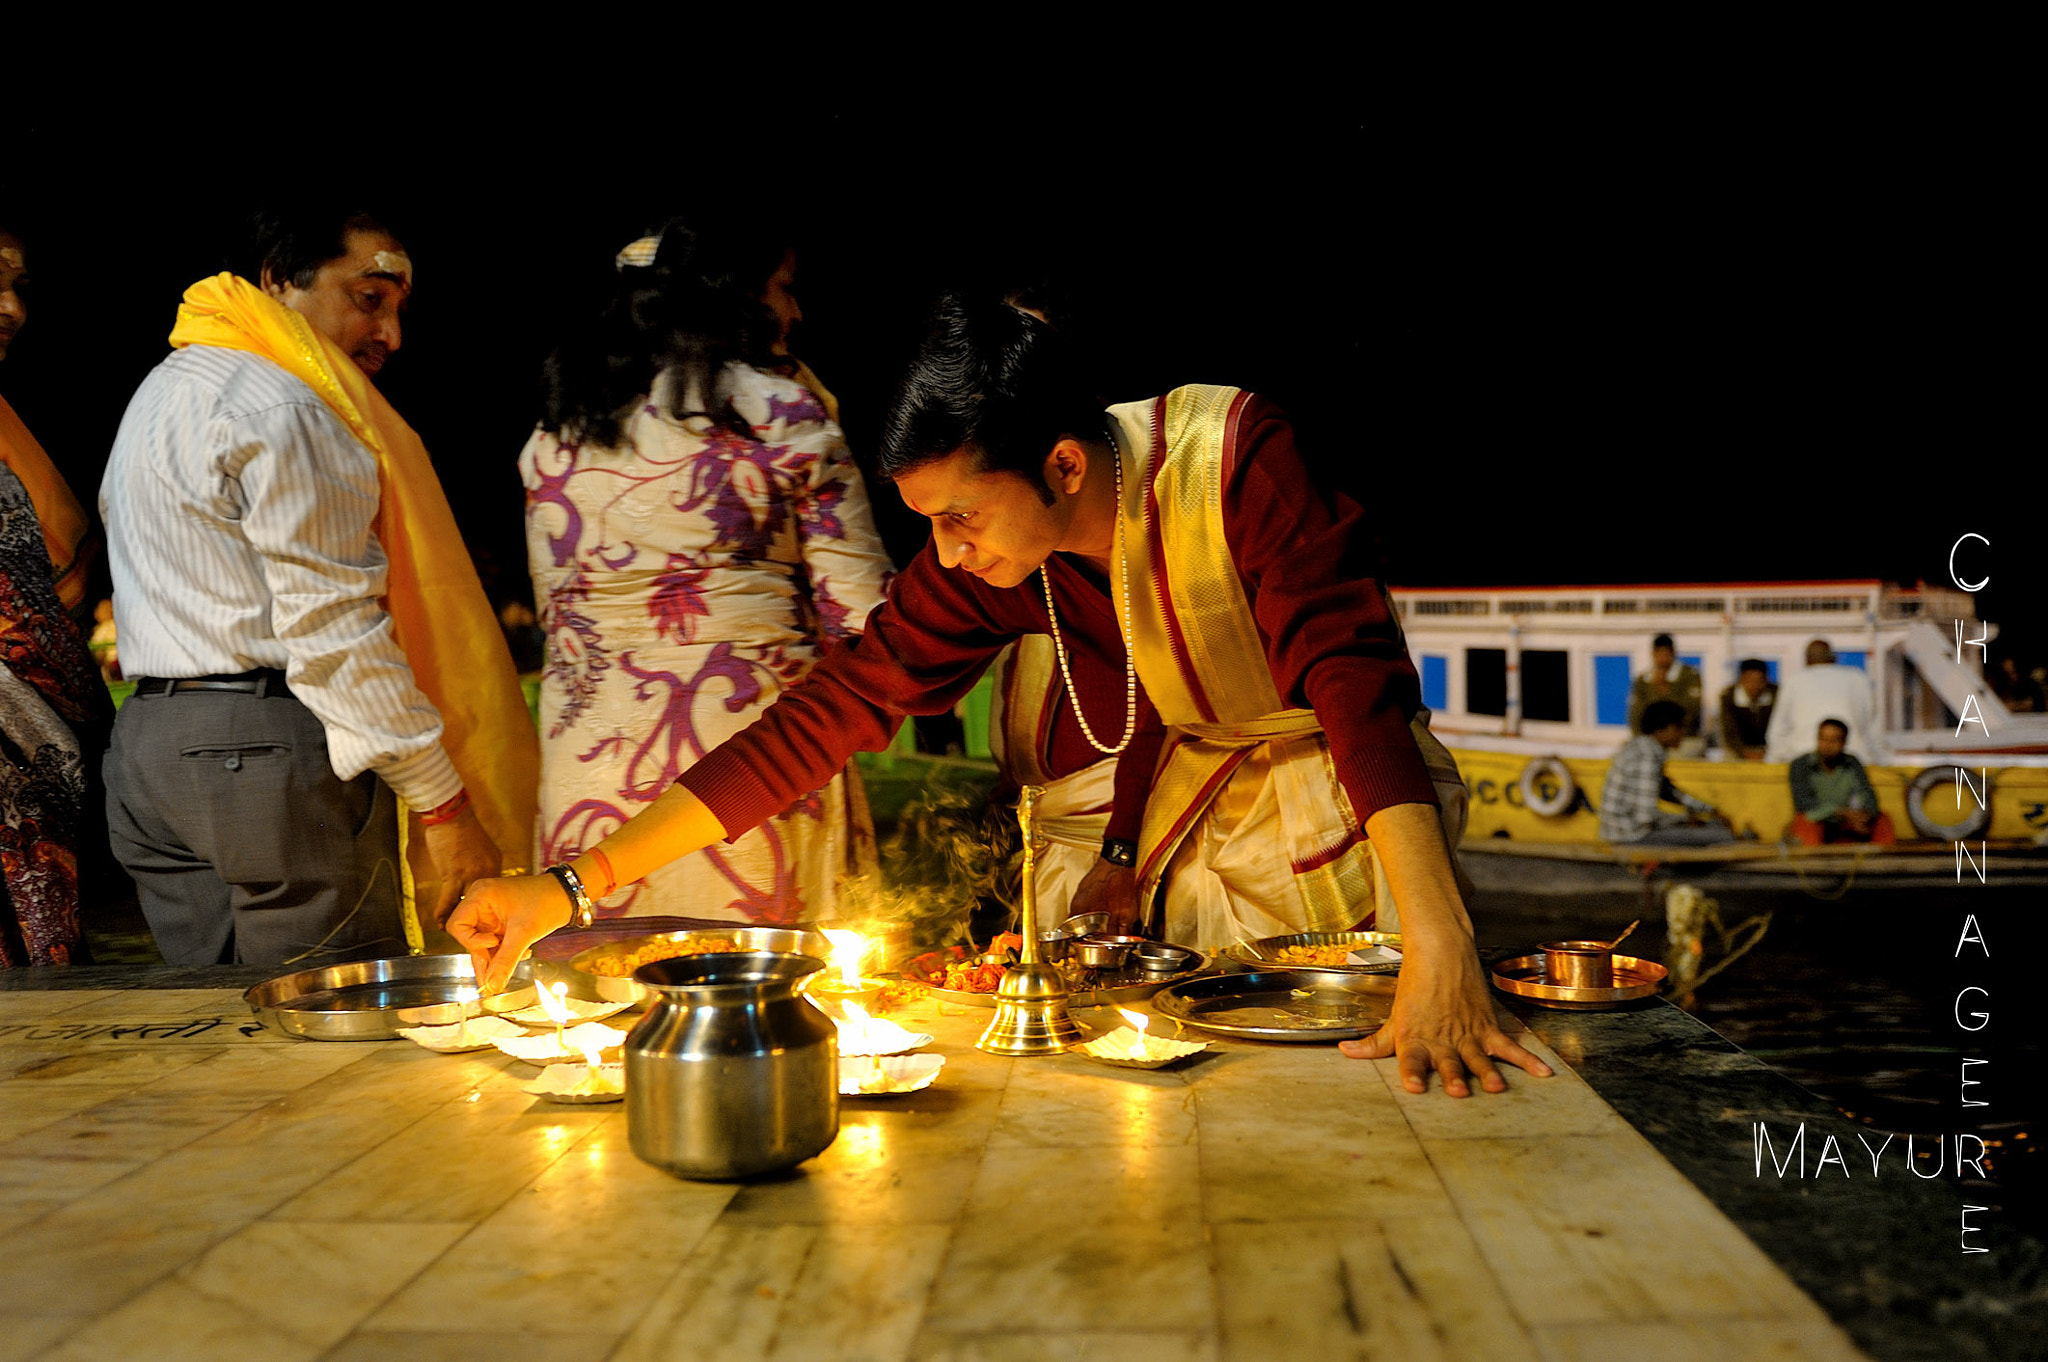 Photograph Ganga Puja - Varnasi 2013 by Mayur Channagere on 500px